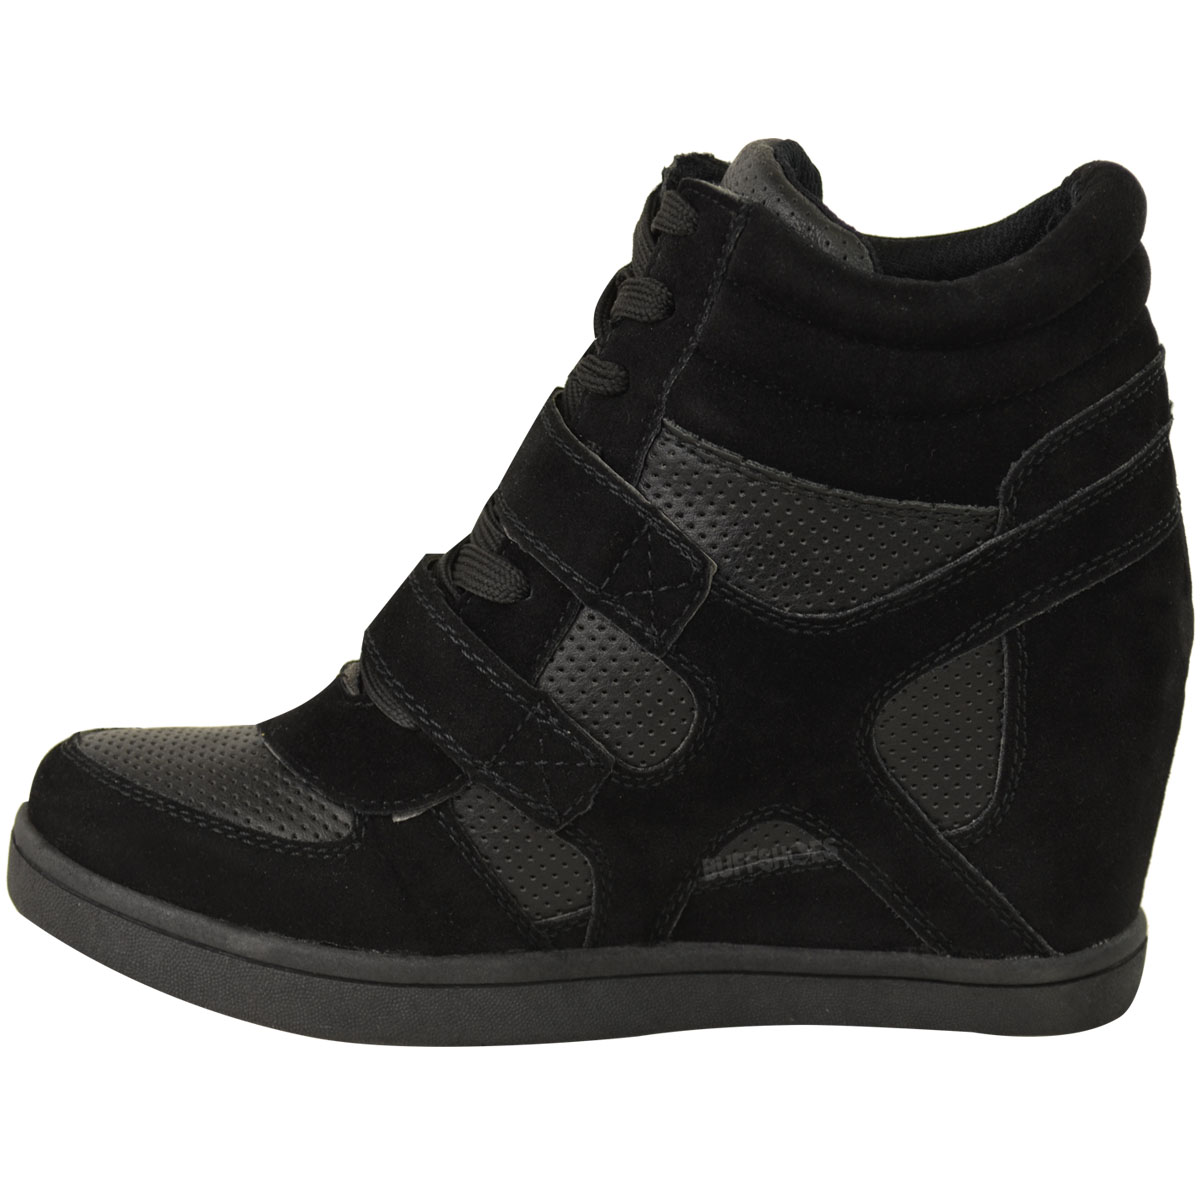 neu damen frauen hi top keilturnschuhe turnschuhe pumps sport ankle boots gr e ebay. Black Bedroom Furniture Sets. Home Design Ideas